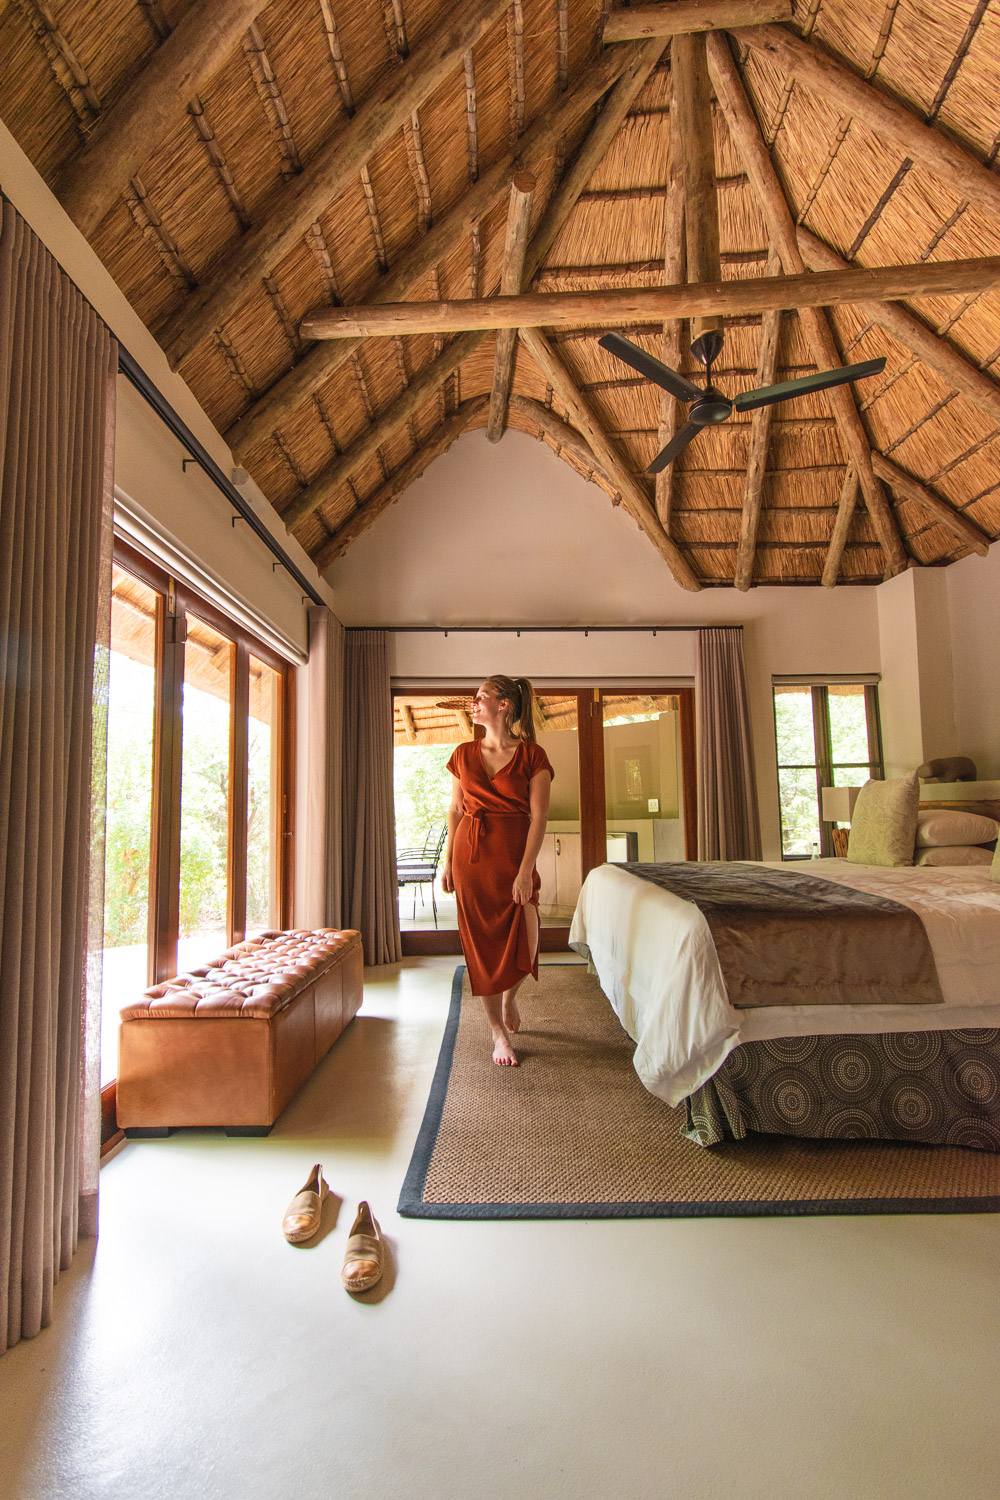 tambuti lodge in Pilanesberg